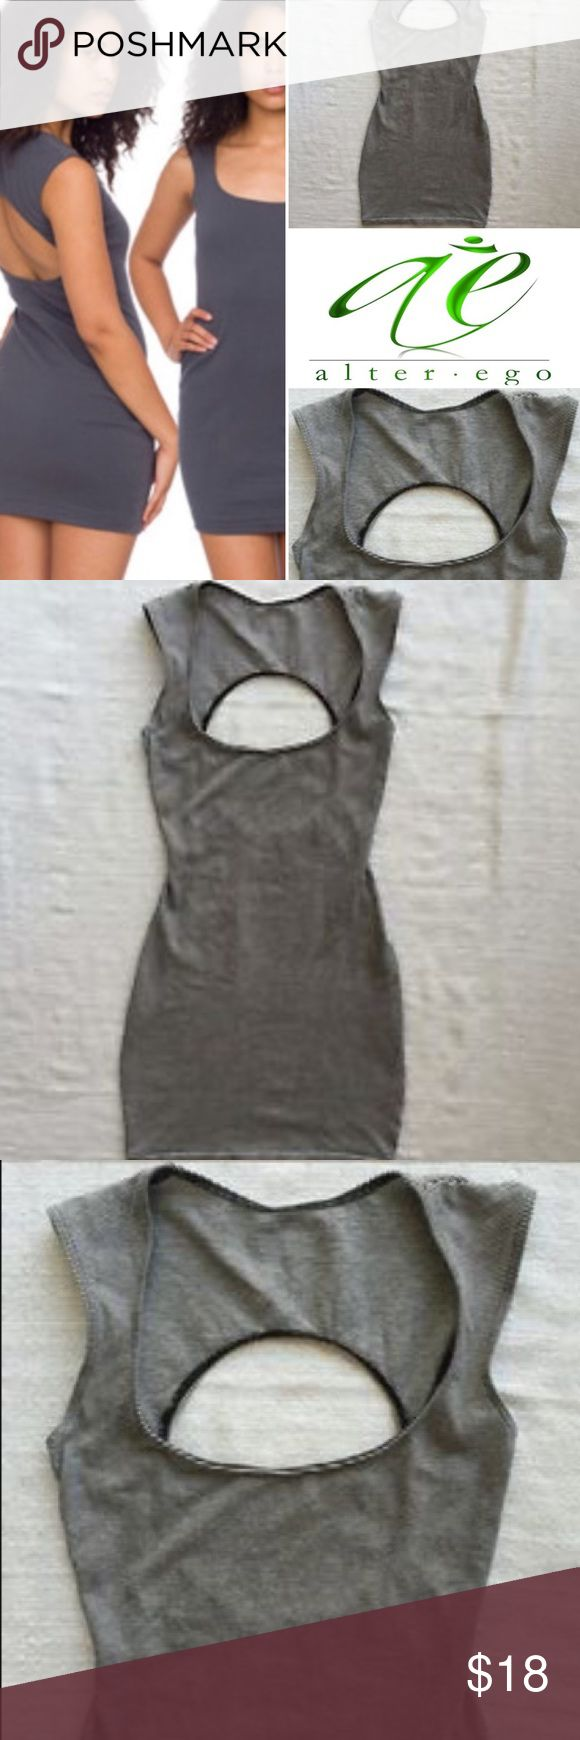 American Apparel open back cutout mini dress NWOT American Apparel NWOT mini dress. Clubwear, date night, or girls night out mini dress. Figure flattering with sexy openings. I pictured wearing it as a tunic with leggings for a more demure feel. Definitely a must have statement for your collection. Buy...take a flic...tag me on Facebook @paulafmoreno or Instagram @HarlemQT so I can see how you rock it! Bundle 📦for 10% 💵off total 💰purchase🛍!! American Apparel Dresses Mini